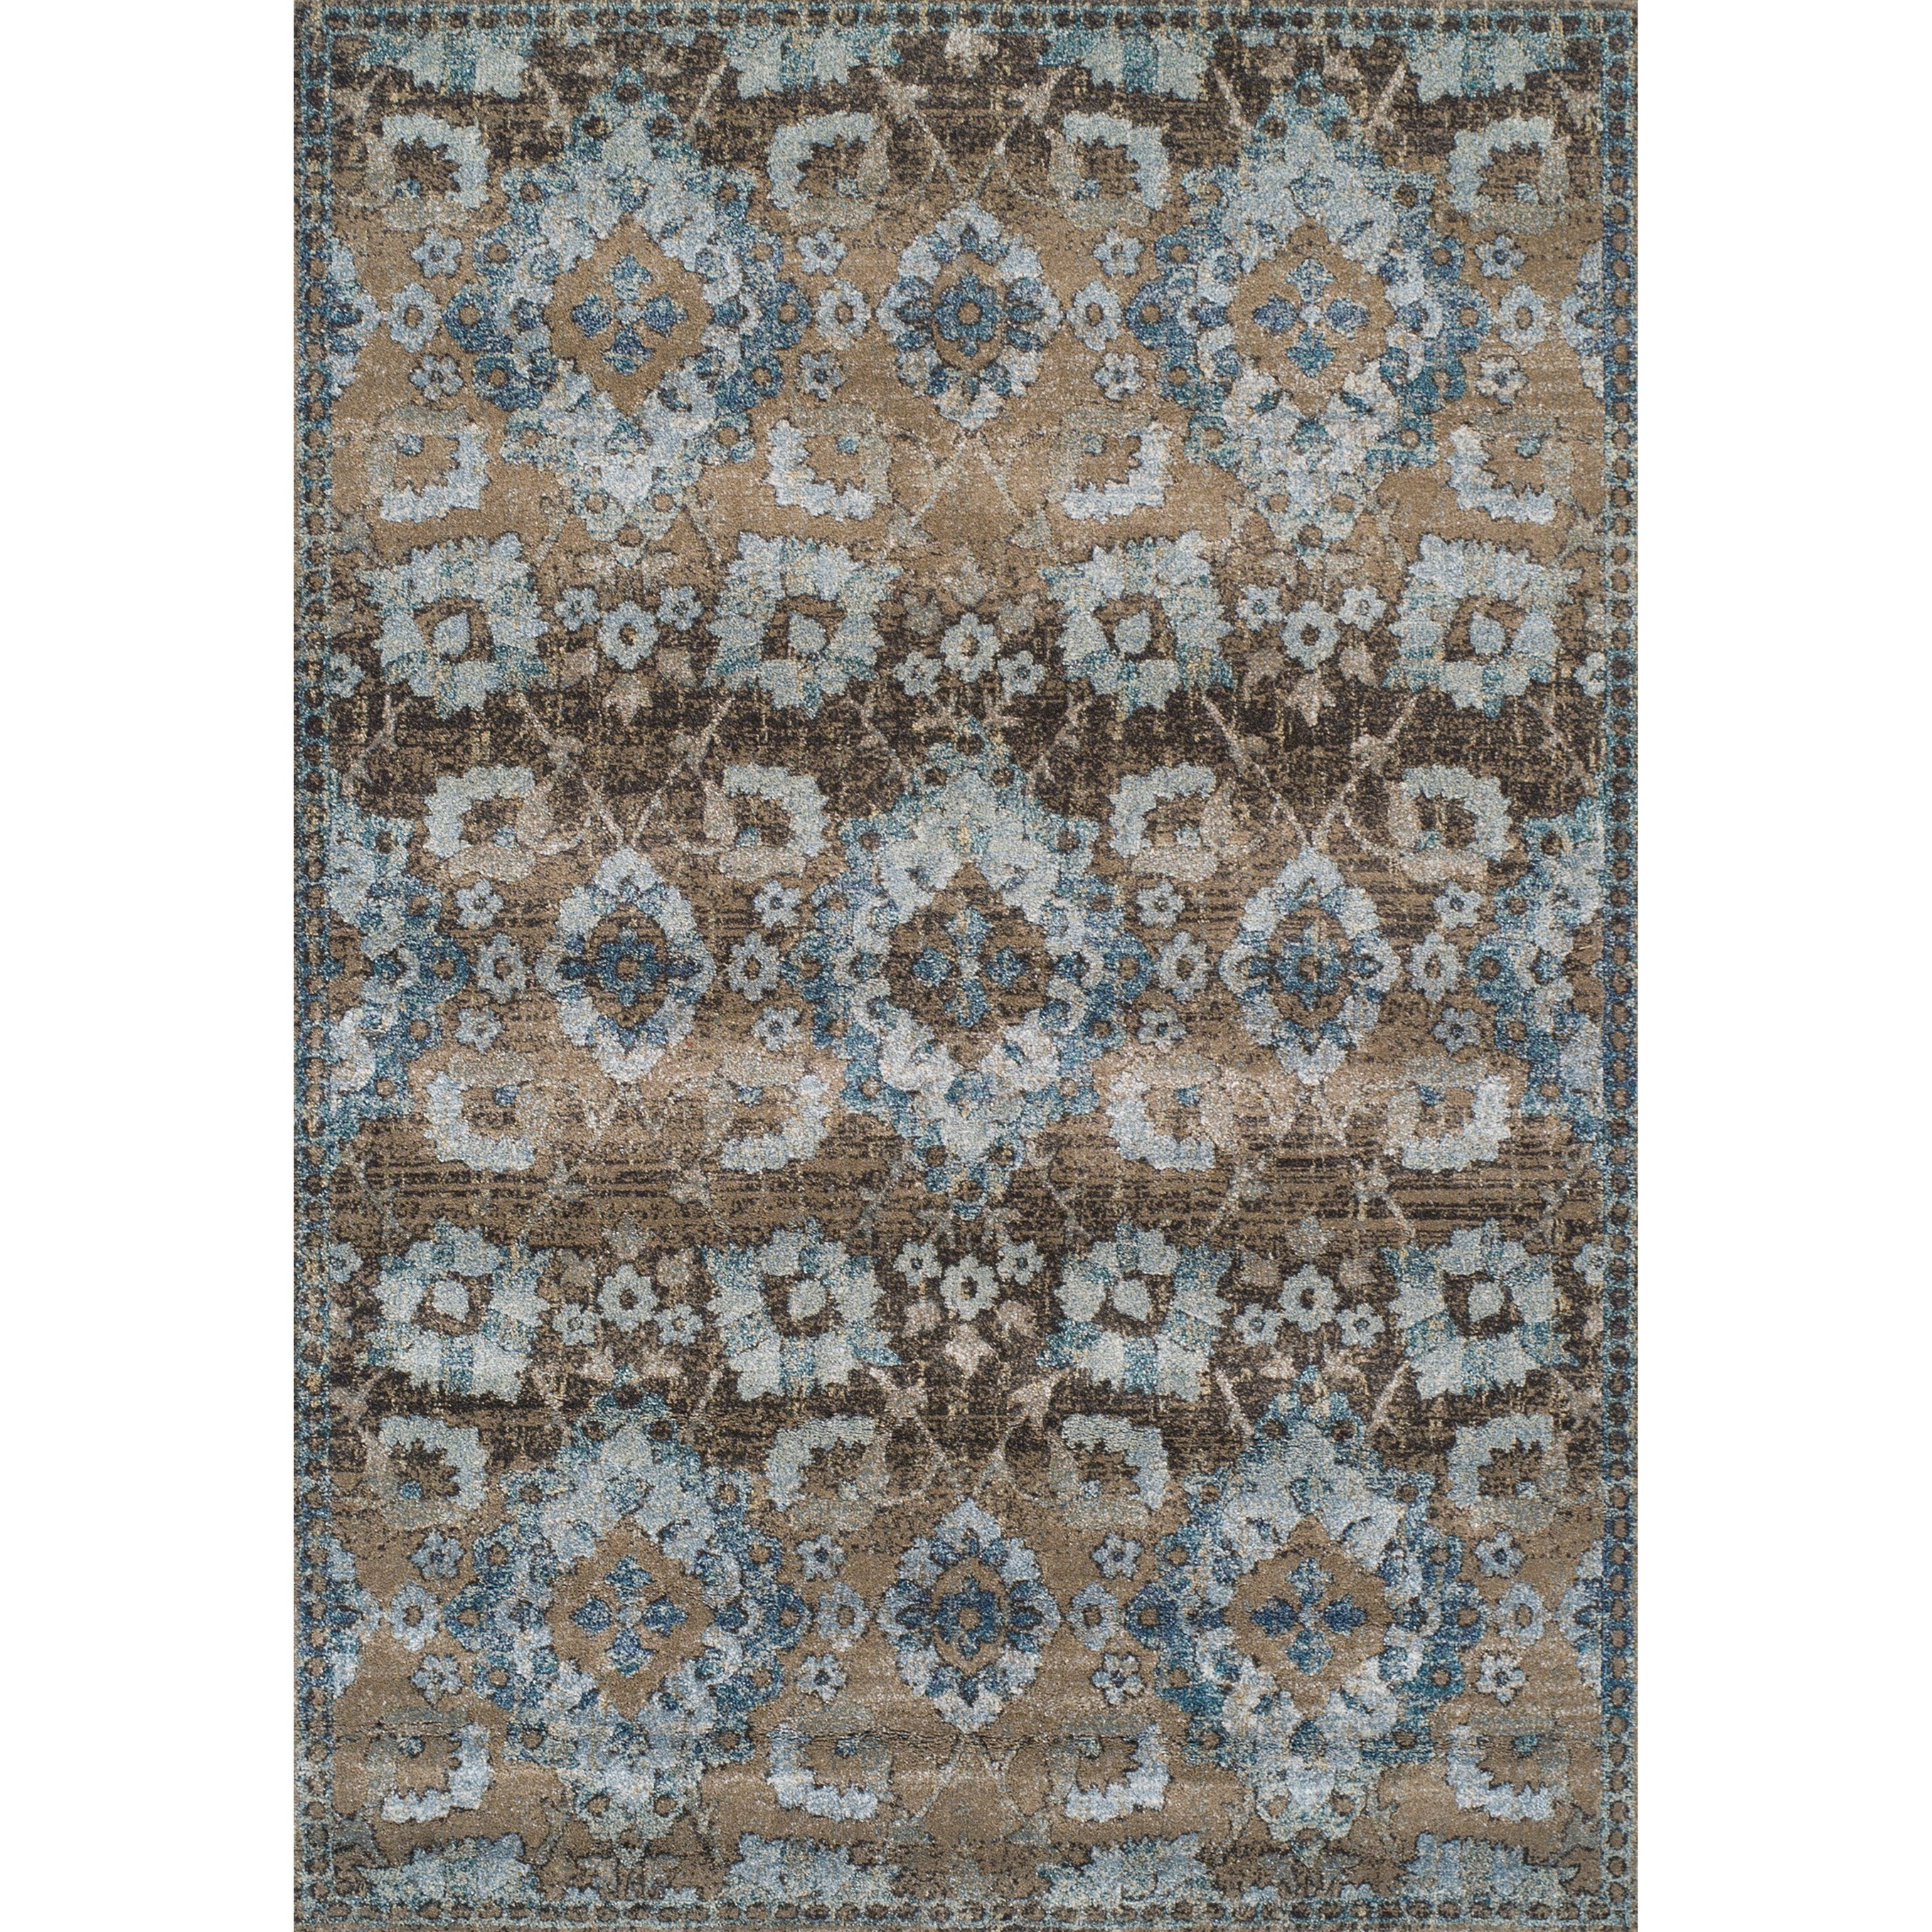 "Antigua Mocha 7'10""X10'7"" Area Rug by Dalyn at Sadler's Home Furnishings"